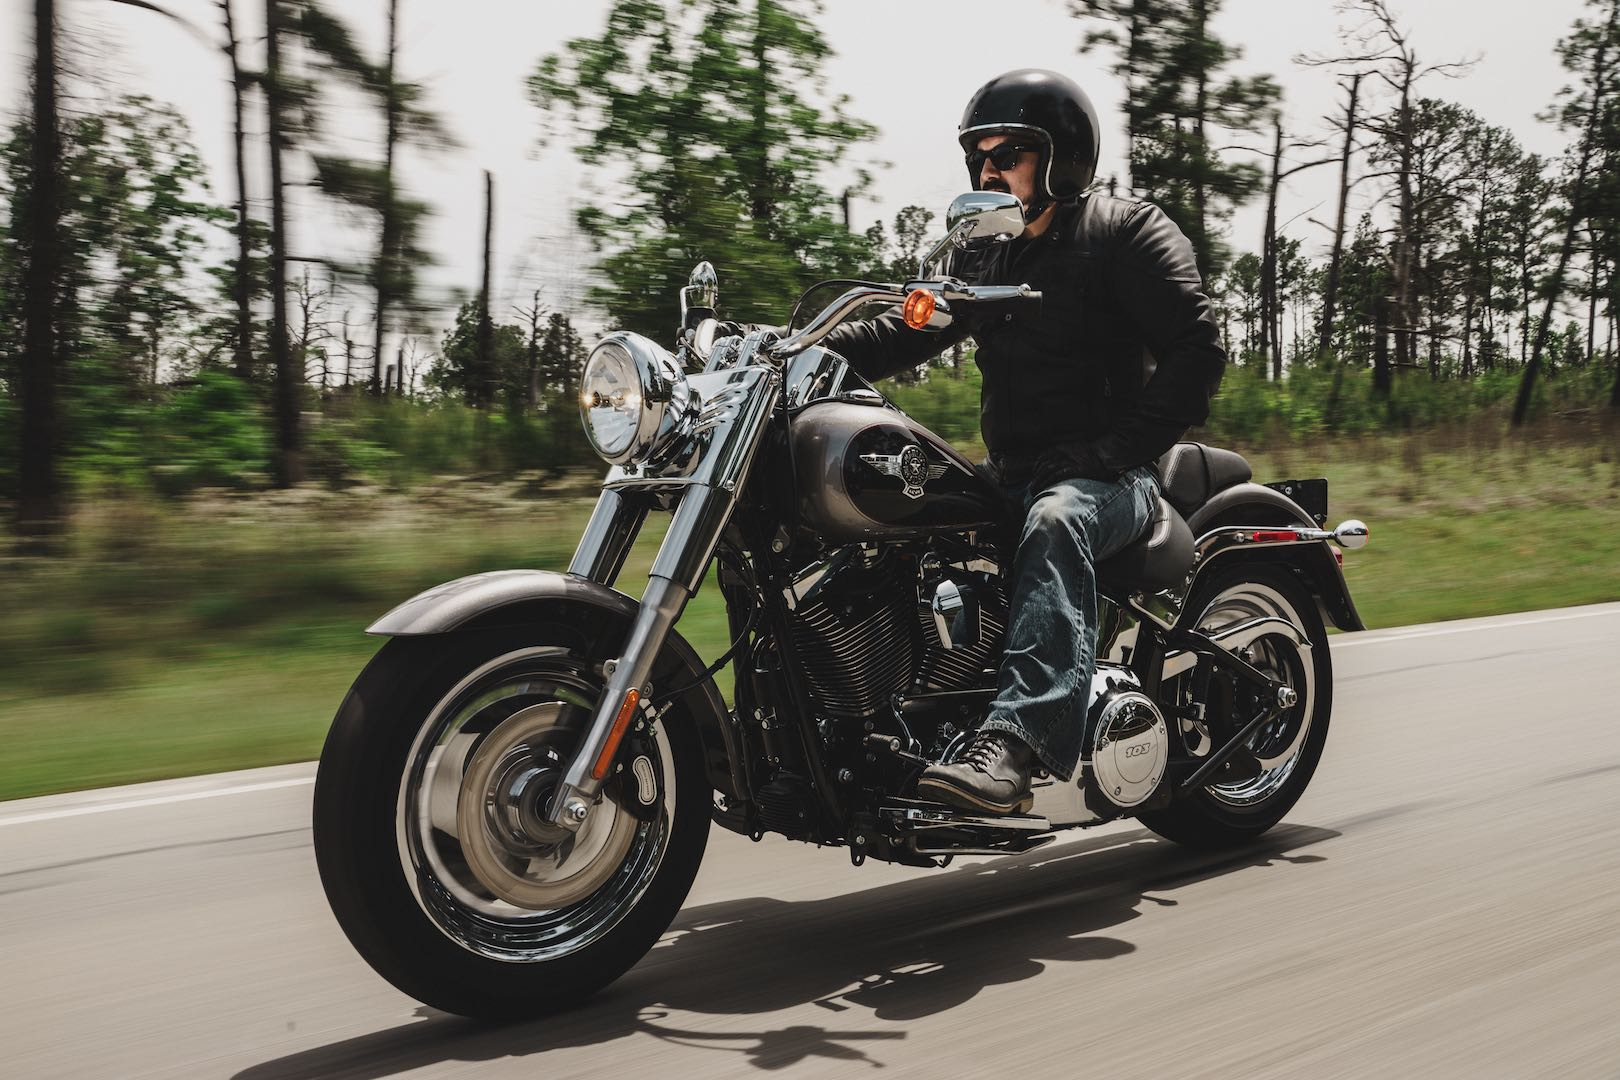 2017 Harley-Davidson Softail Fat Boy Buyer's Guide | Specs & Price